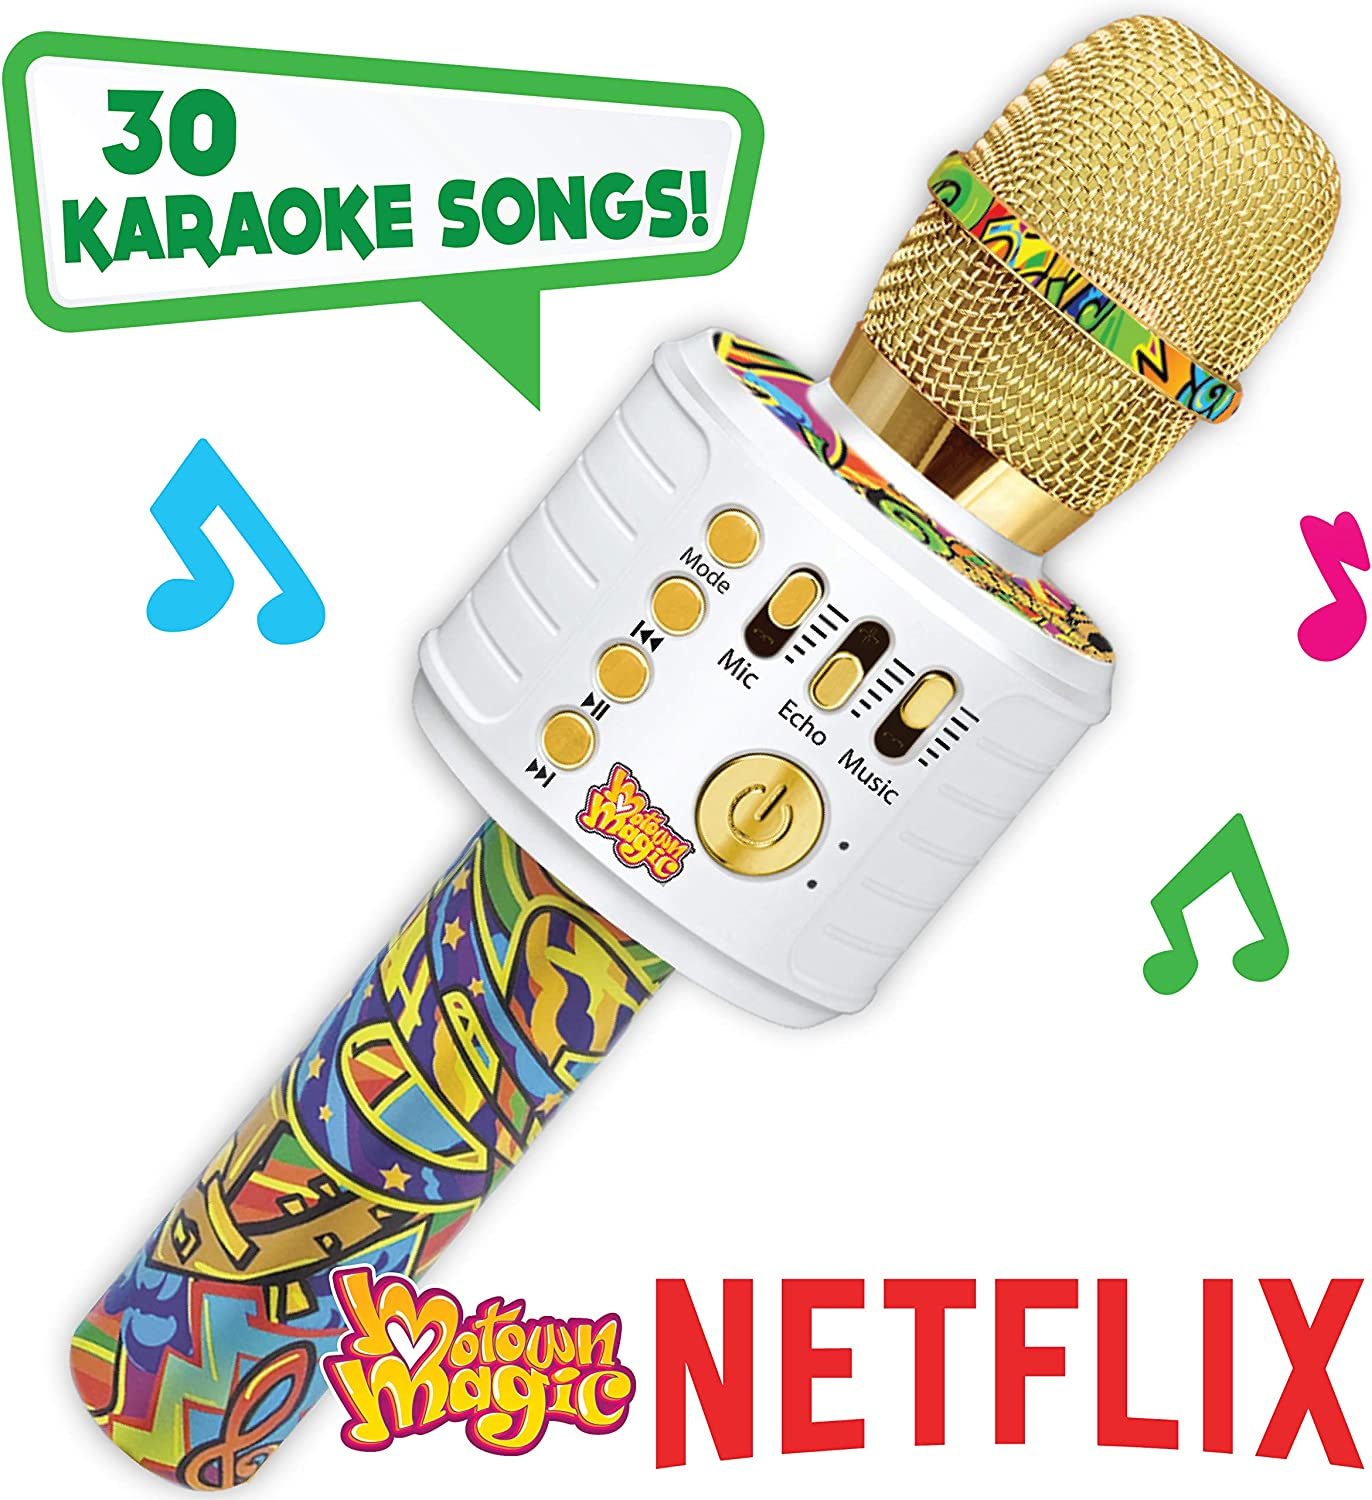 Motown Magic Bluetooth Karaoke Microphone Perfect Christmas Gifts for Kids